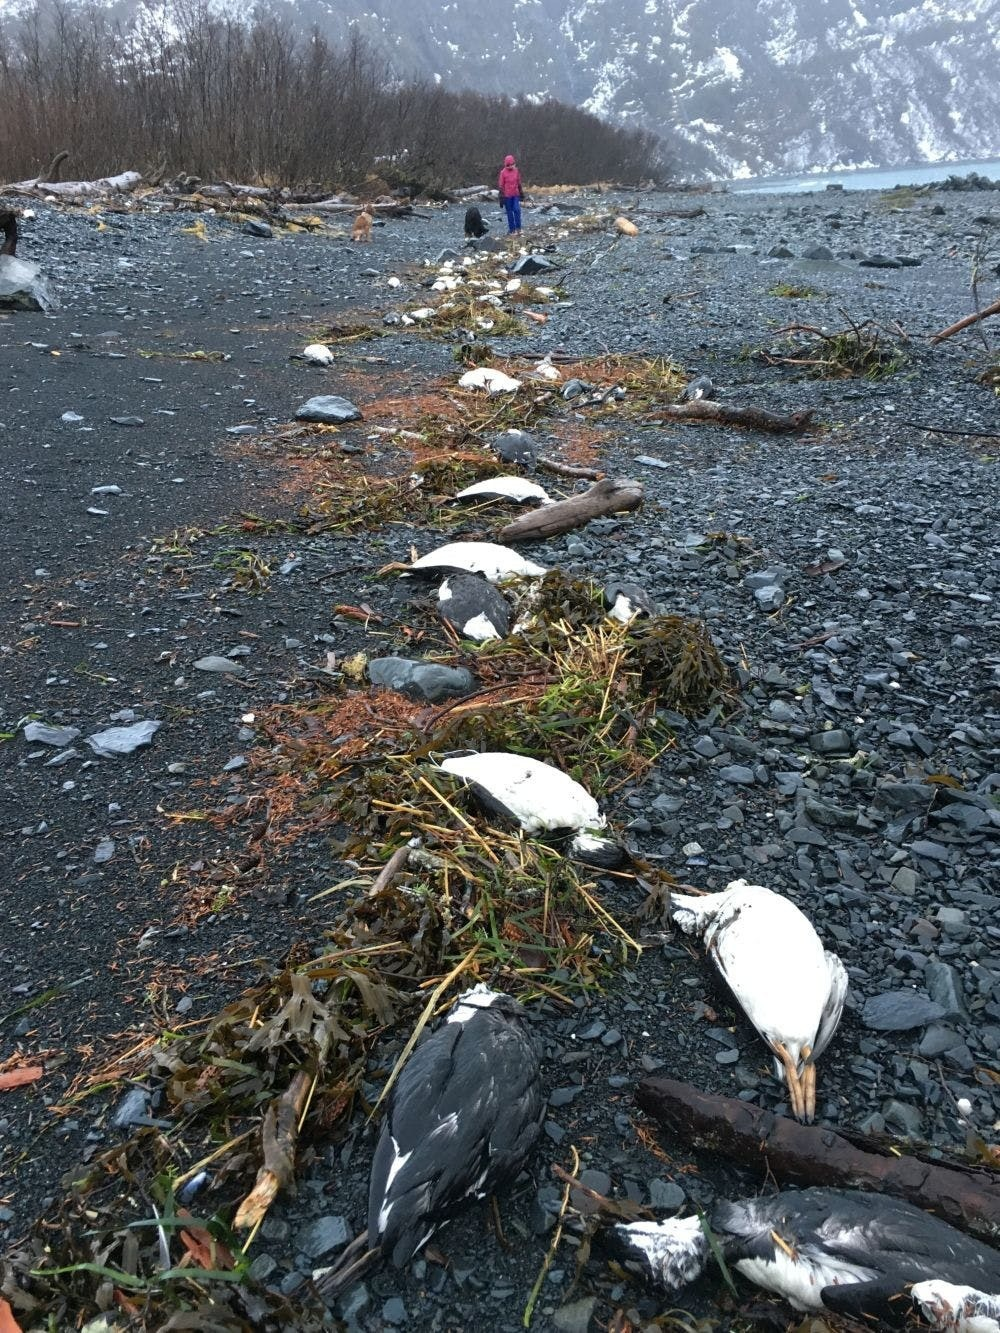 On January 1 and 2 2016, 6,540 common guillemot carcasses were found washed ashore near Whitter, Alaska.